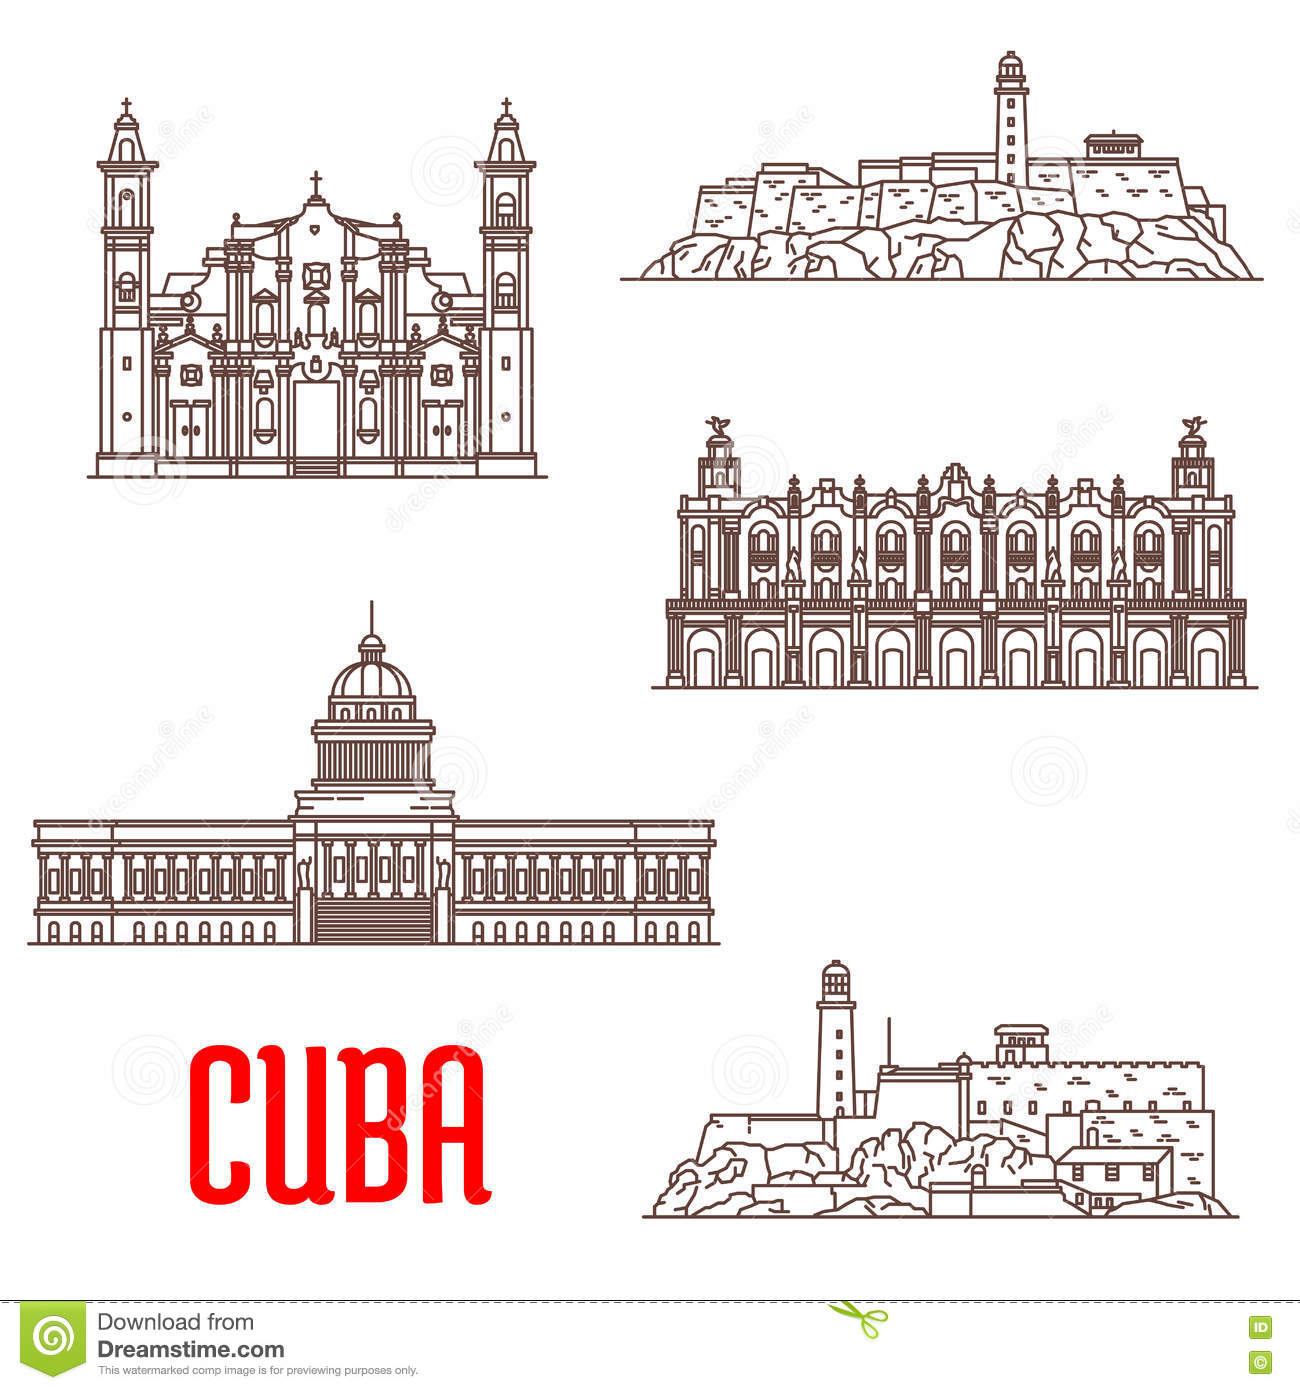 Cuba tourist architecture, travel attraction icons